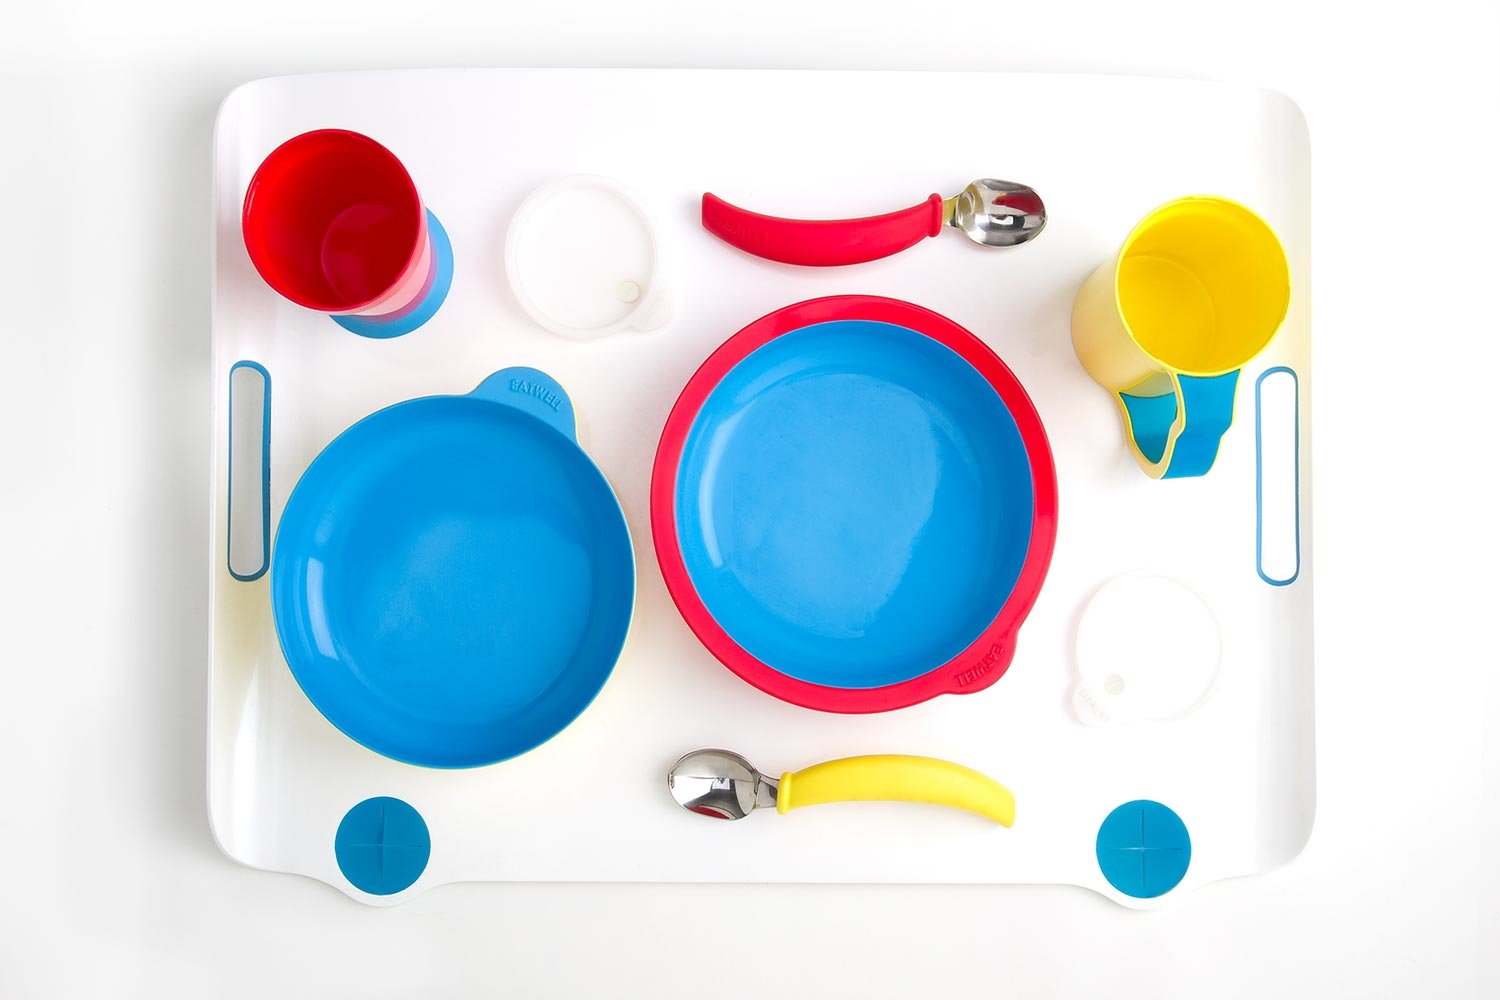 This seven-piece tableware set designed by Sha Yao for Alzheimer's patients includes anti-slip bowls, anti-tipping mugs, and curved spoons.  Photo 1 of 5 in Designs for patients with dementia